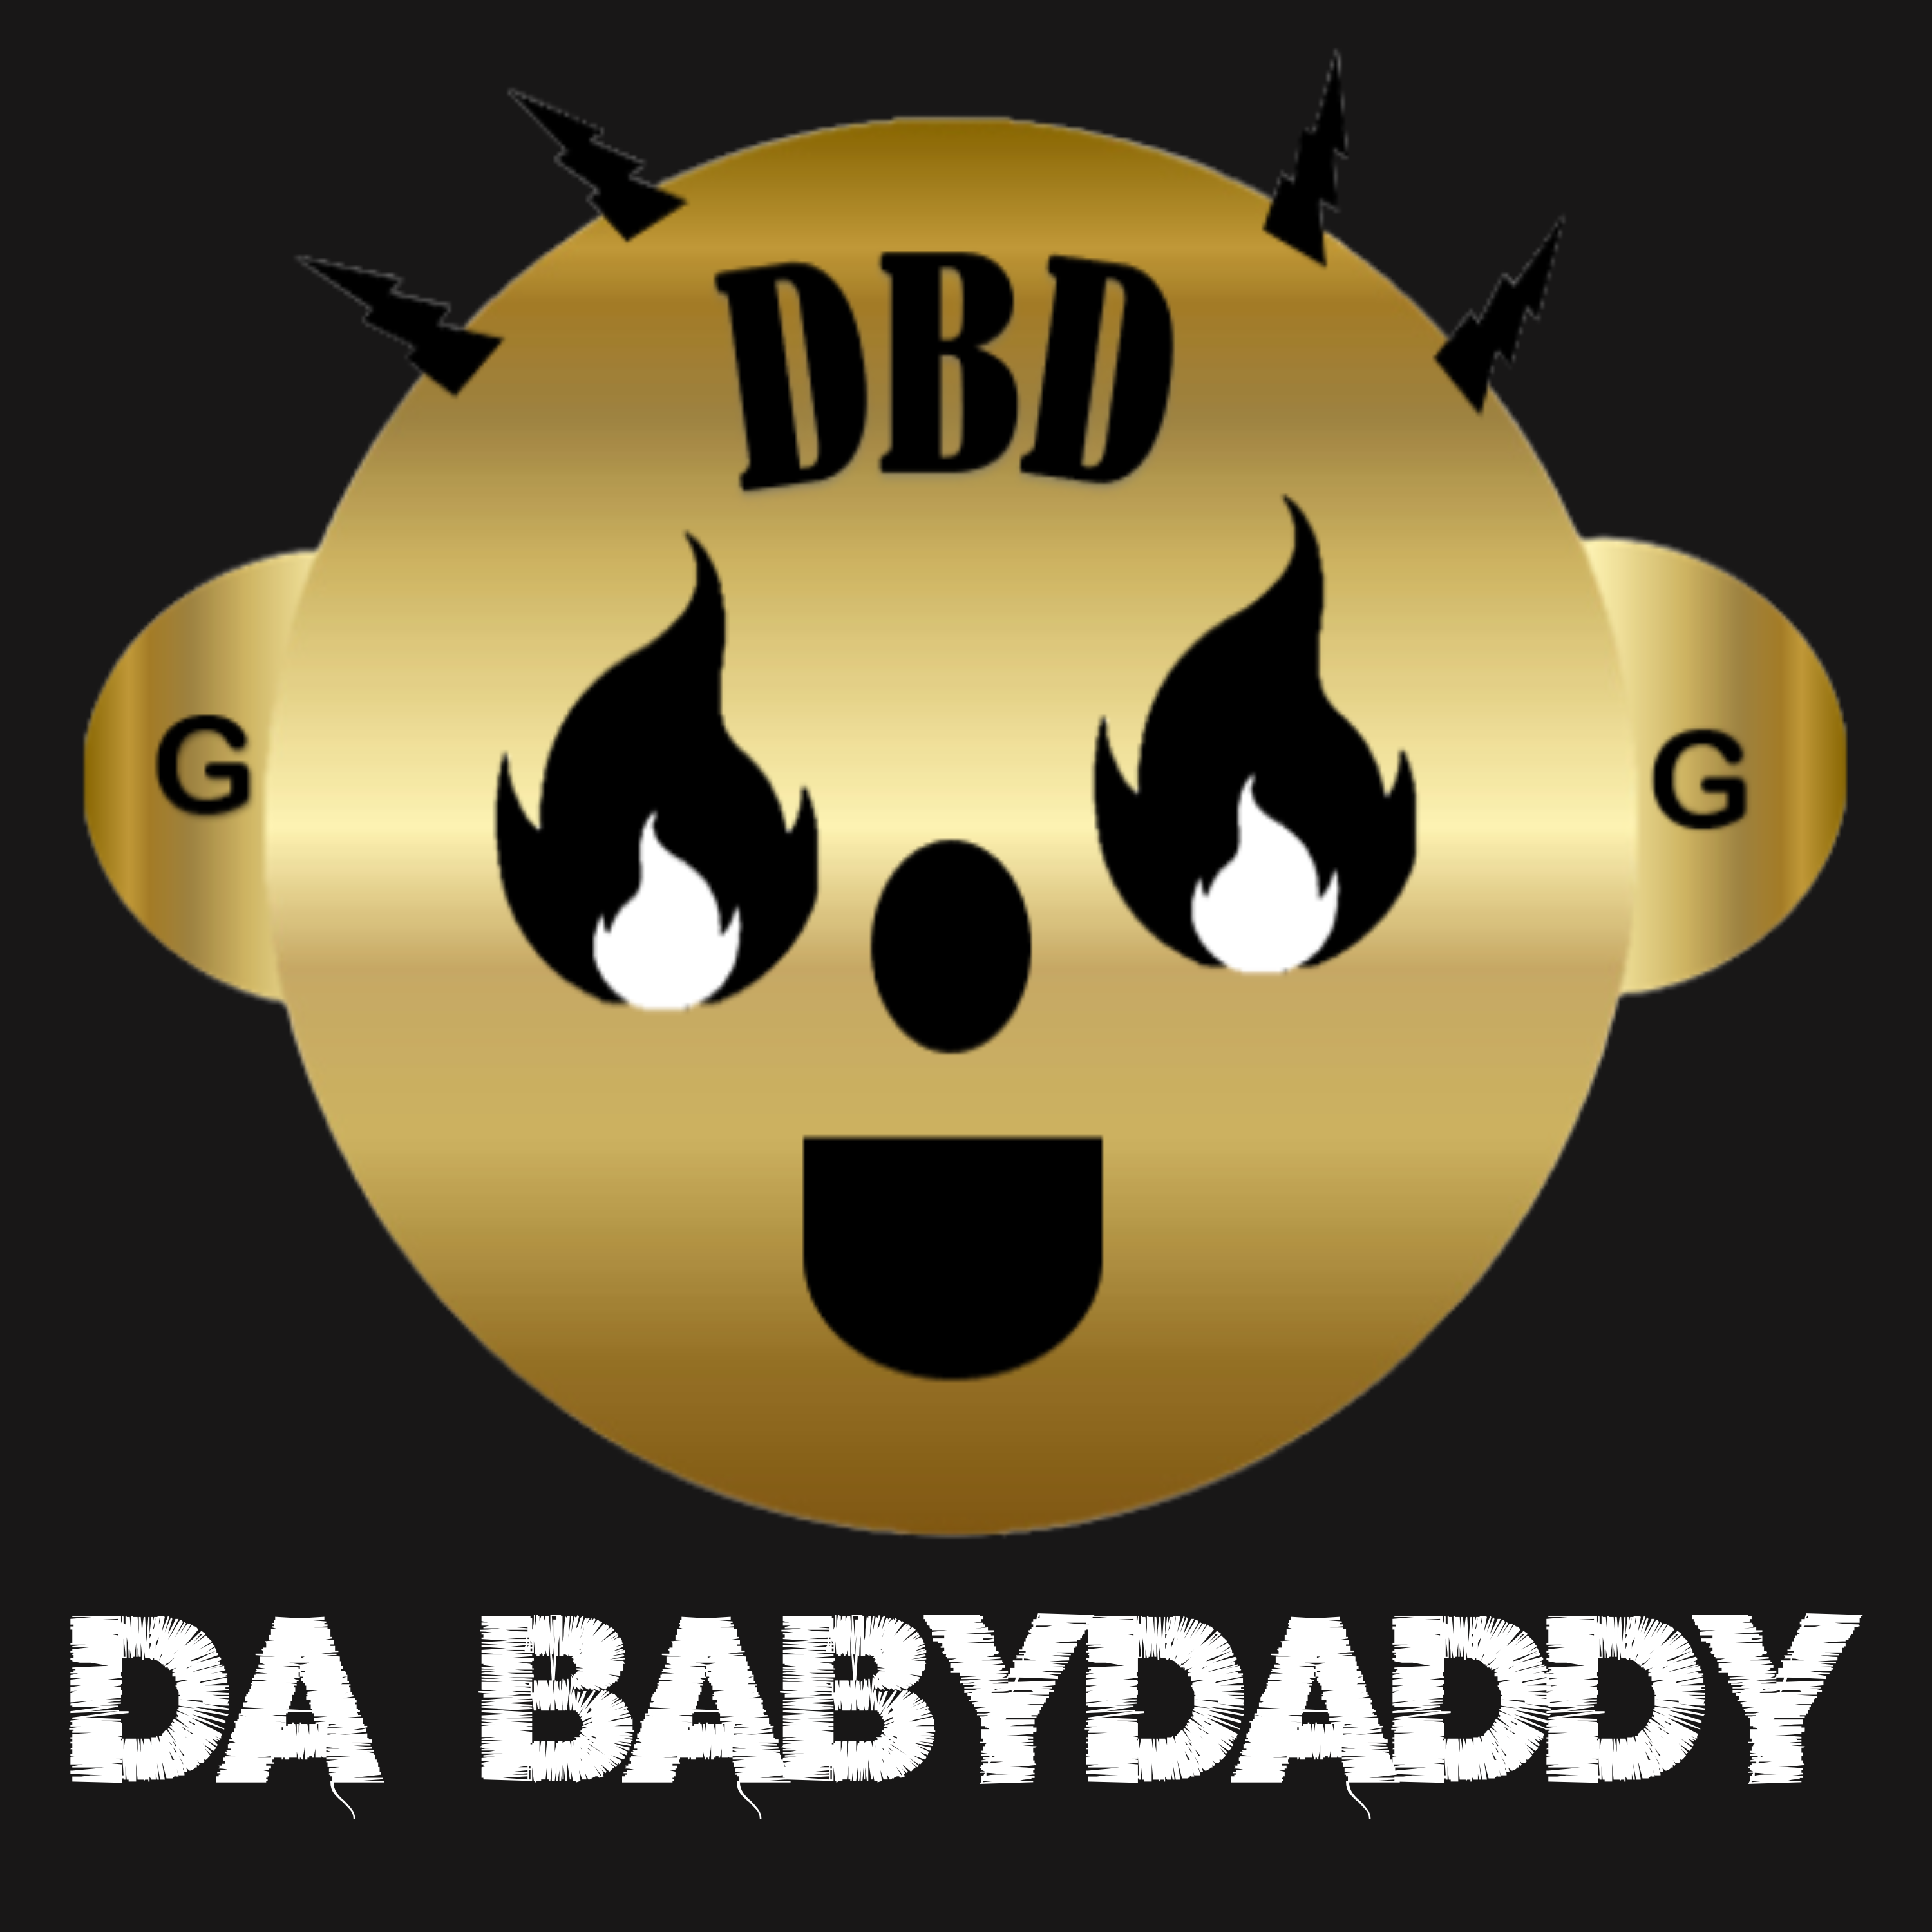 Up and Coming Artist Da BabyDaddy Inspires People With His Latest Tracks